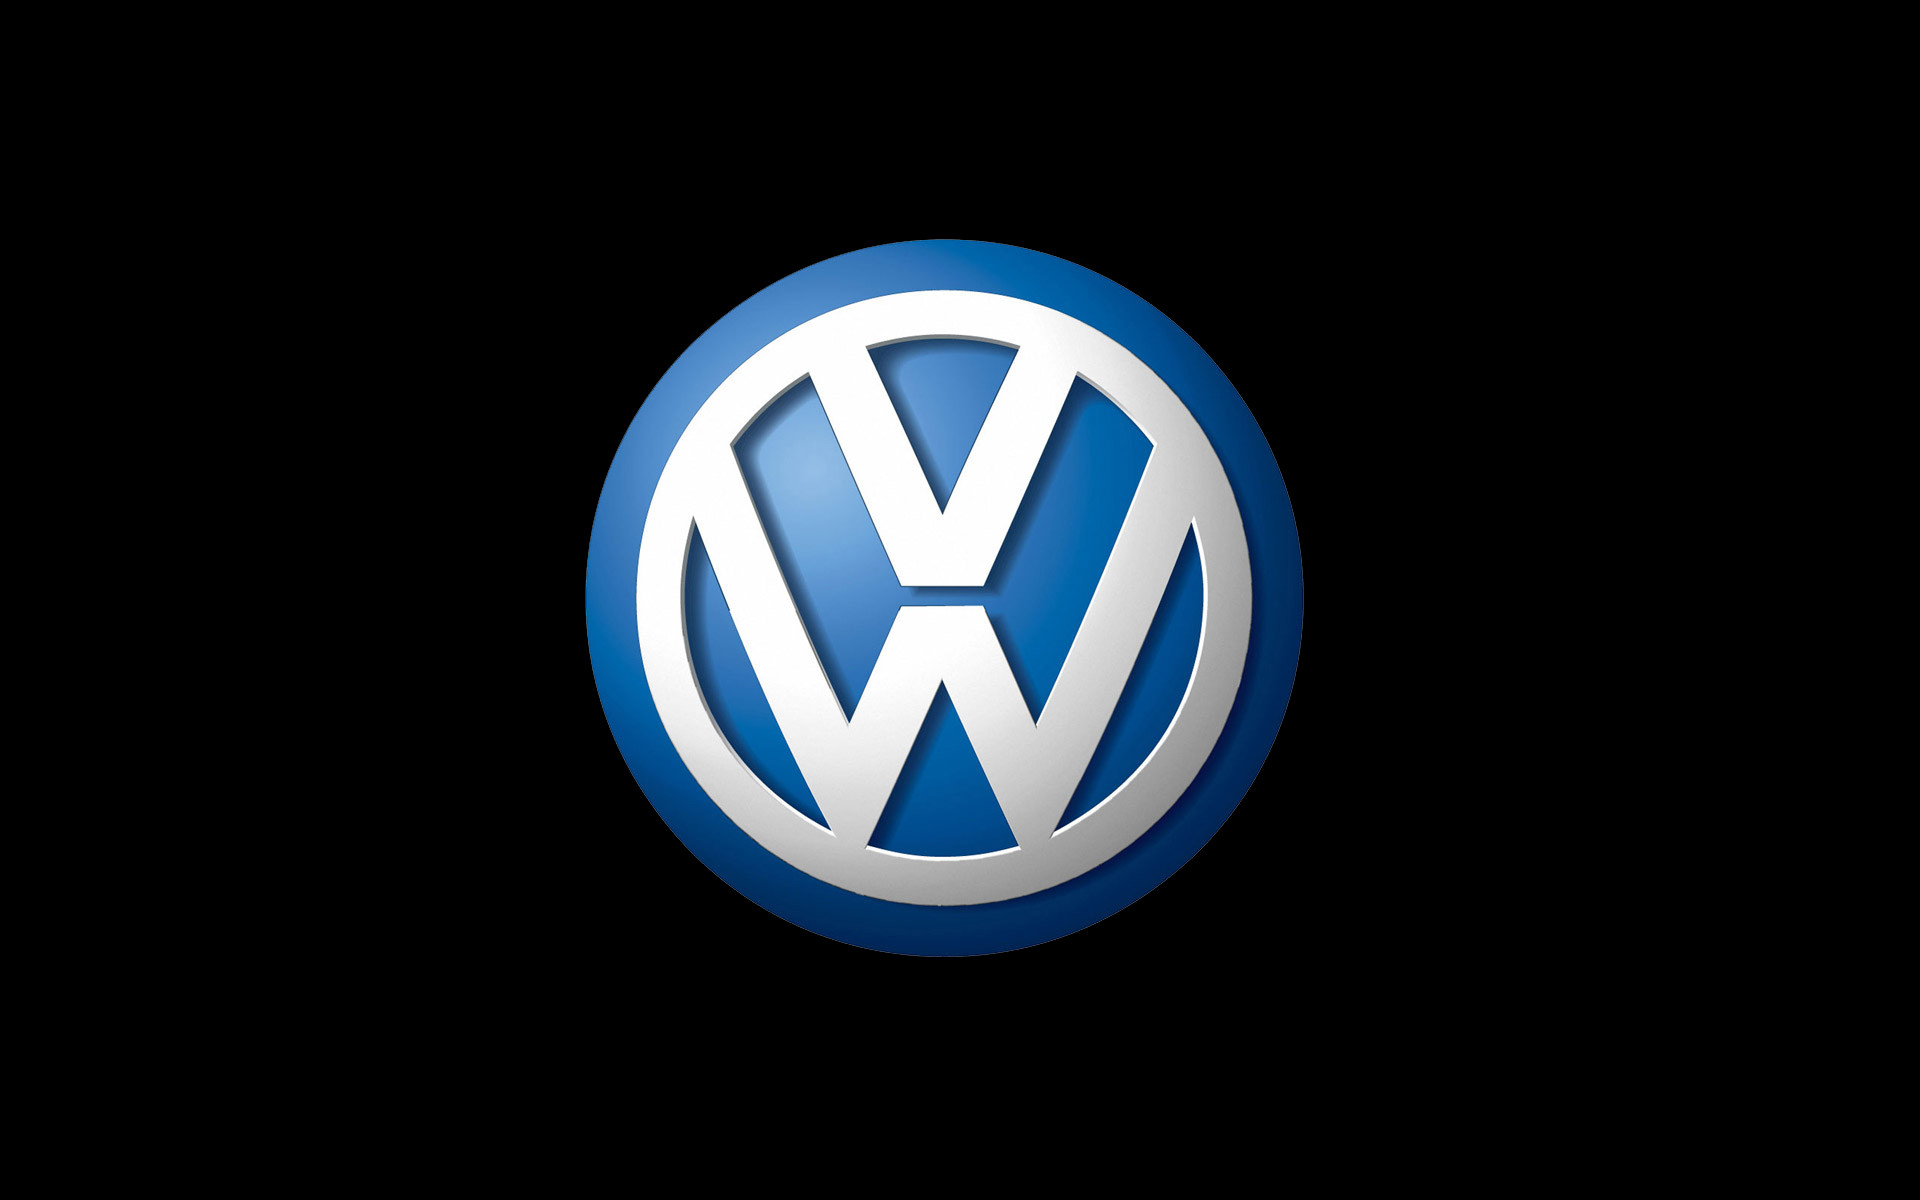 Iphone 4 Wallpaper Anime Vw Logo Wallpapers 60 Images